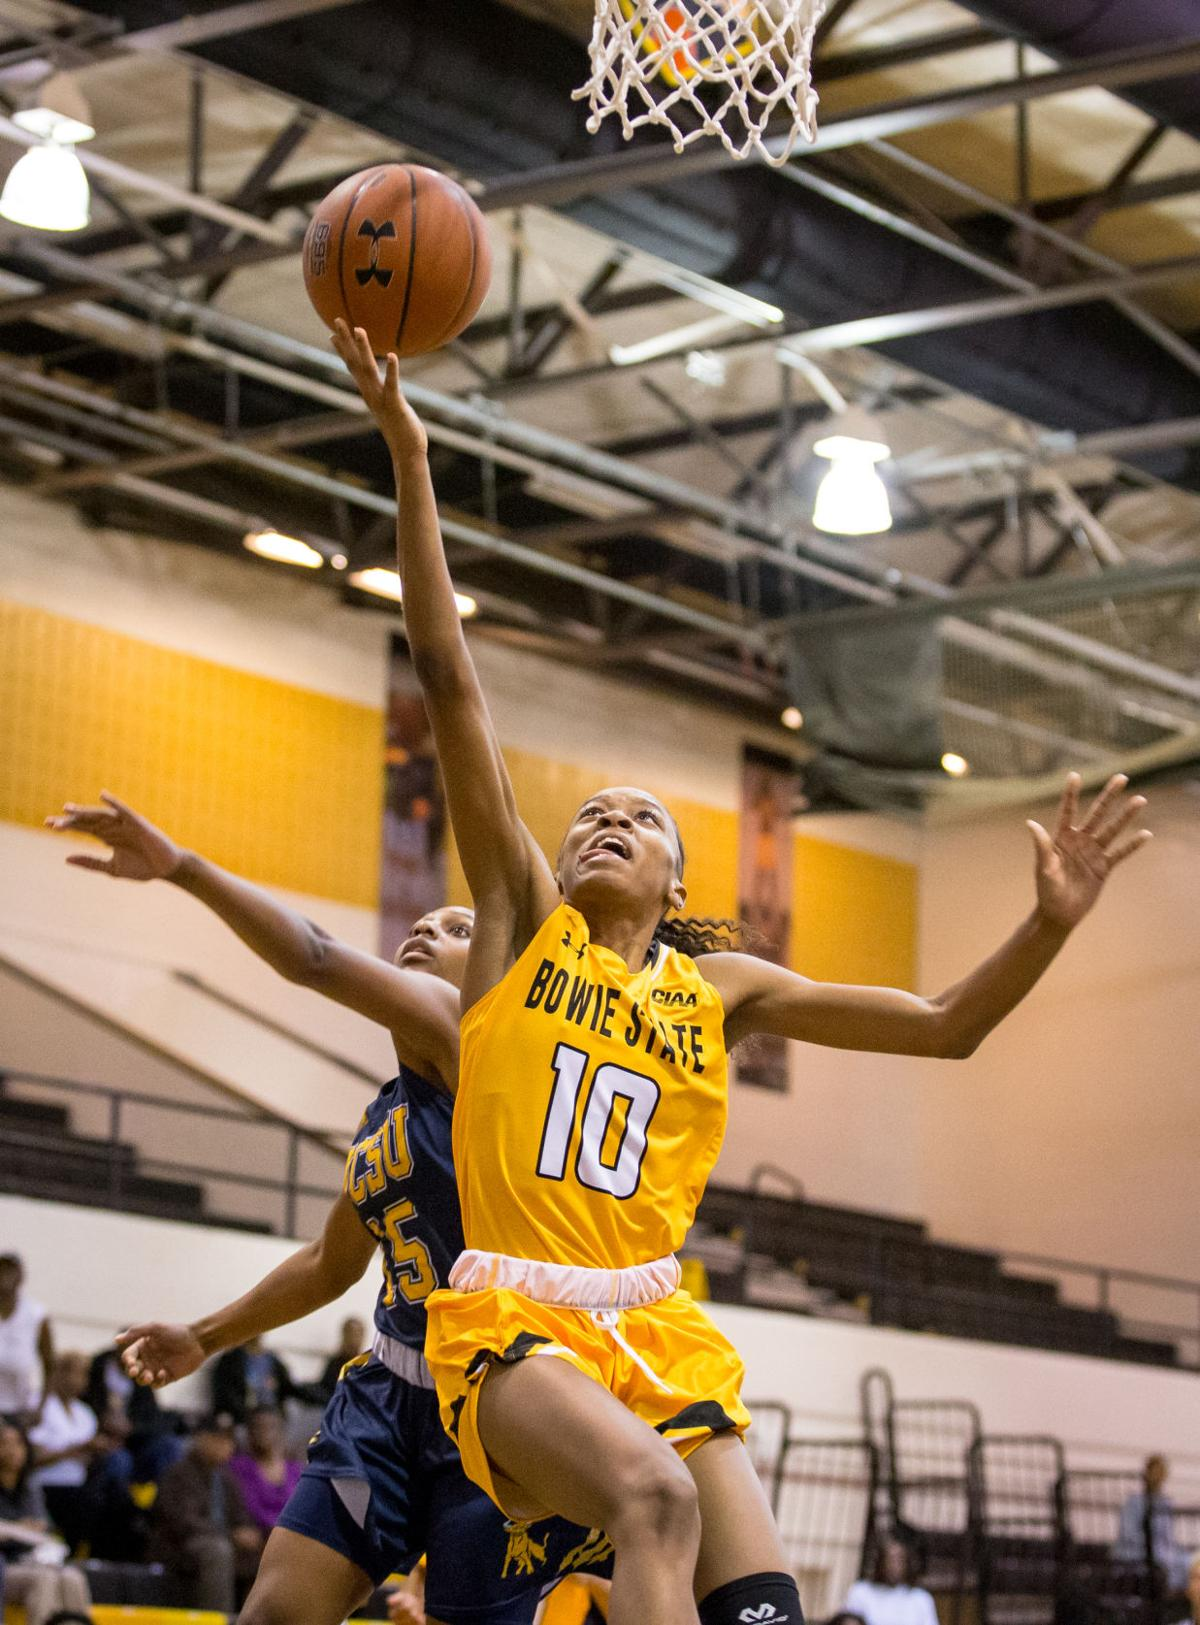 NCAA Women's Basketball 2019: Johnson C. Smith vs. Bowie State